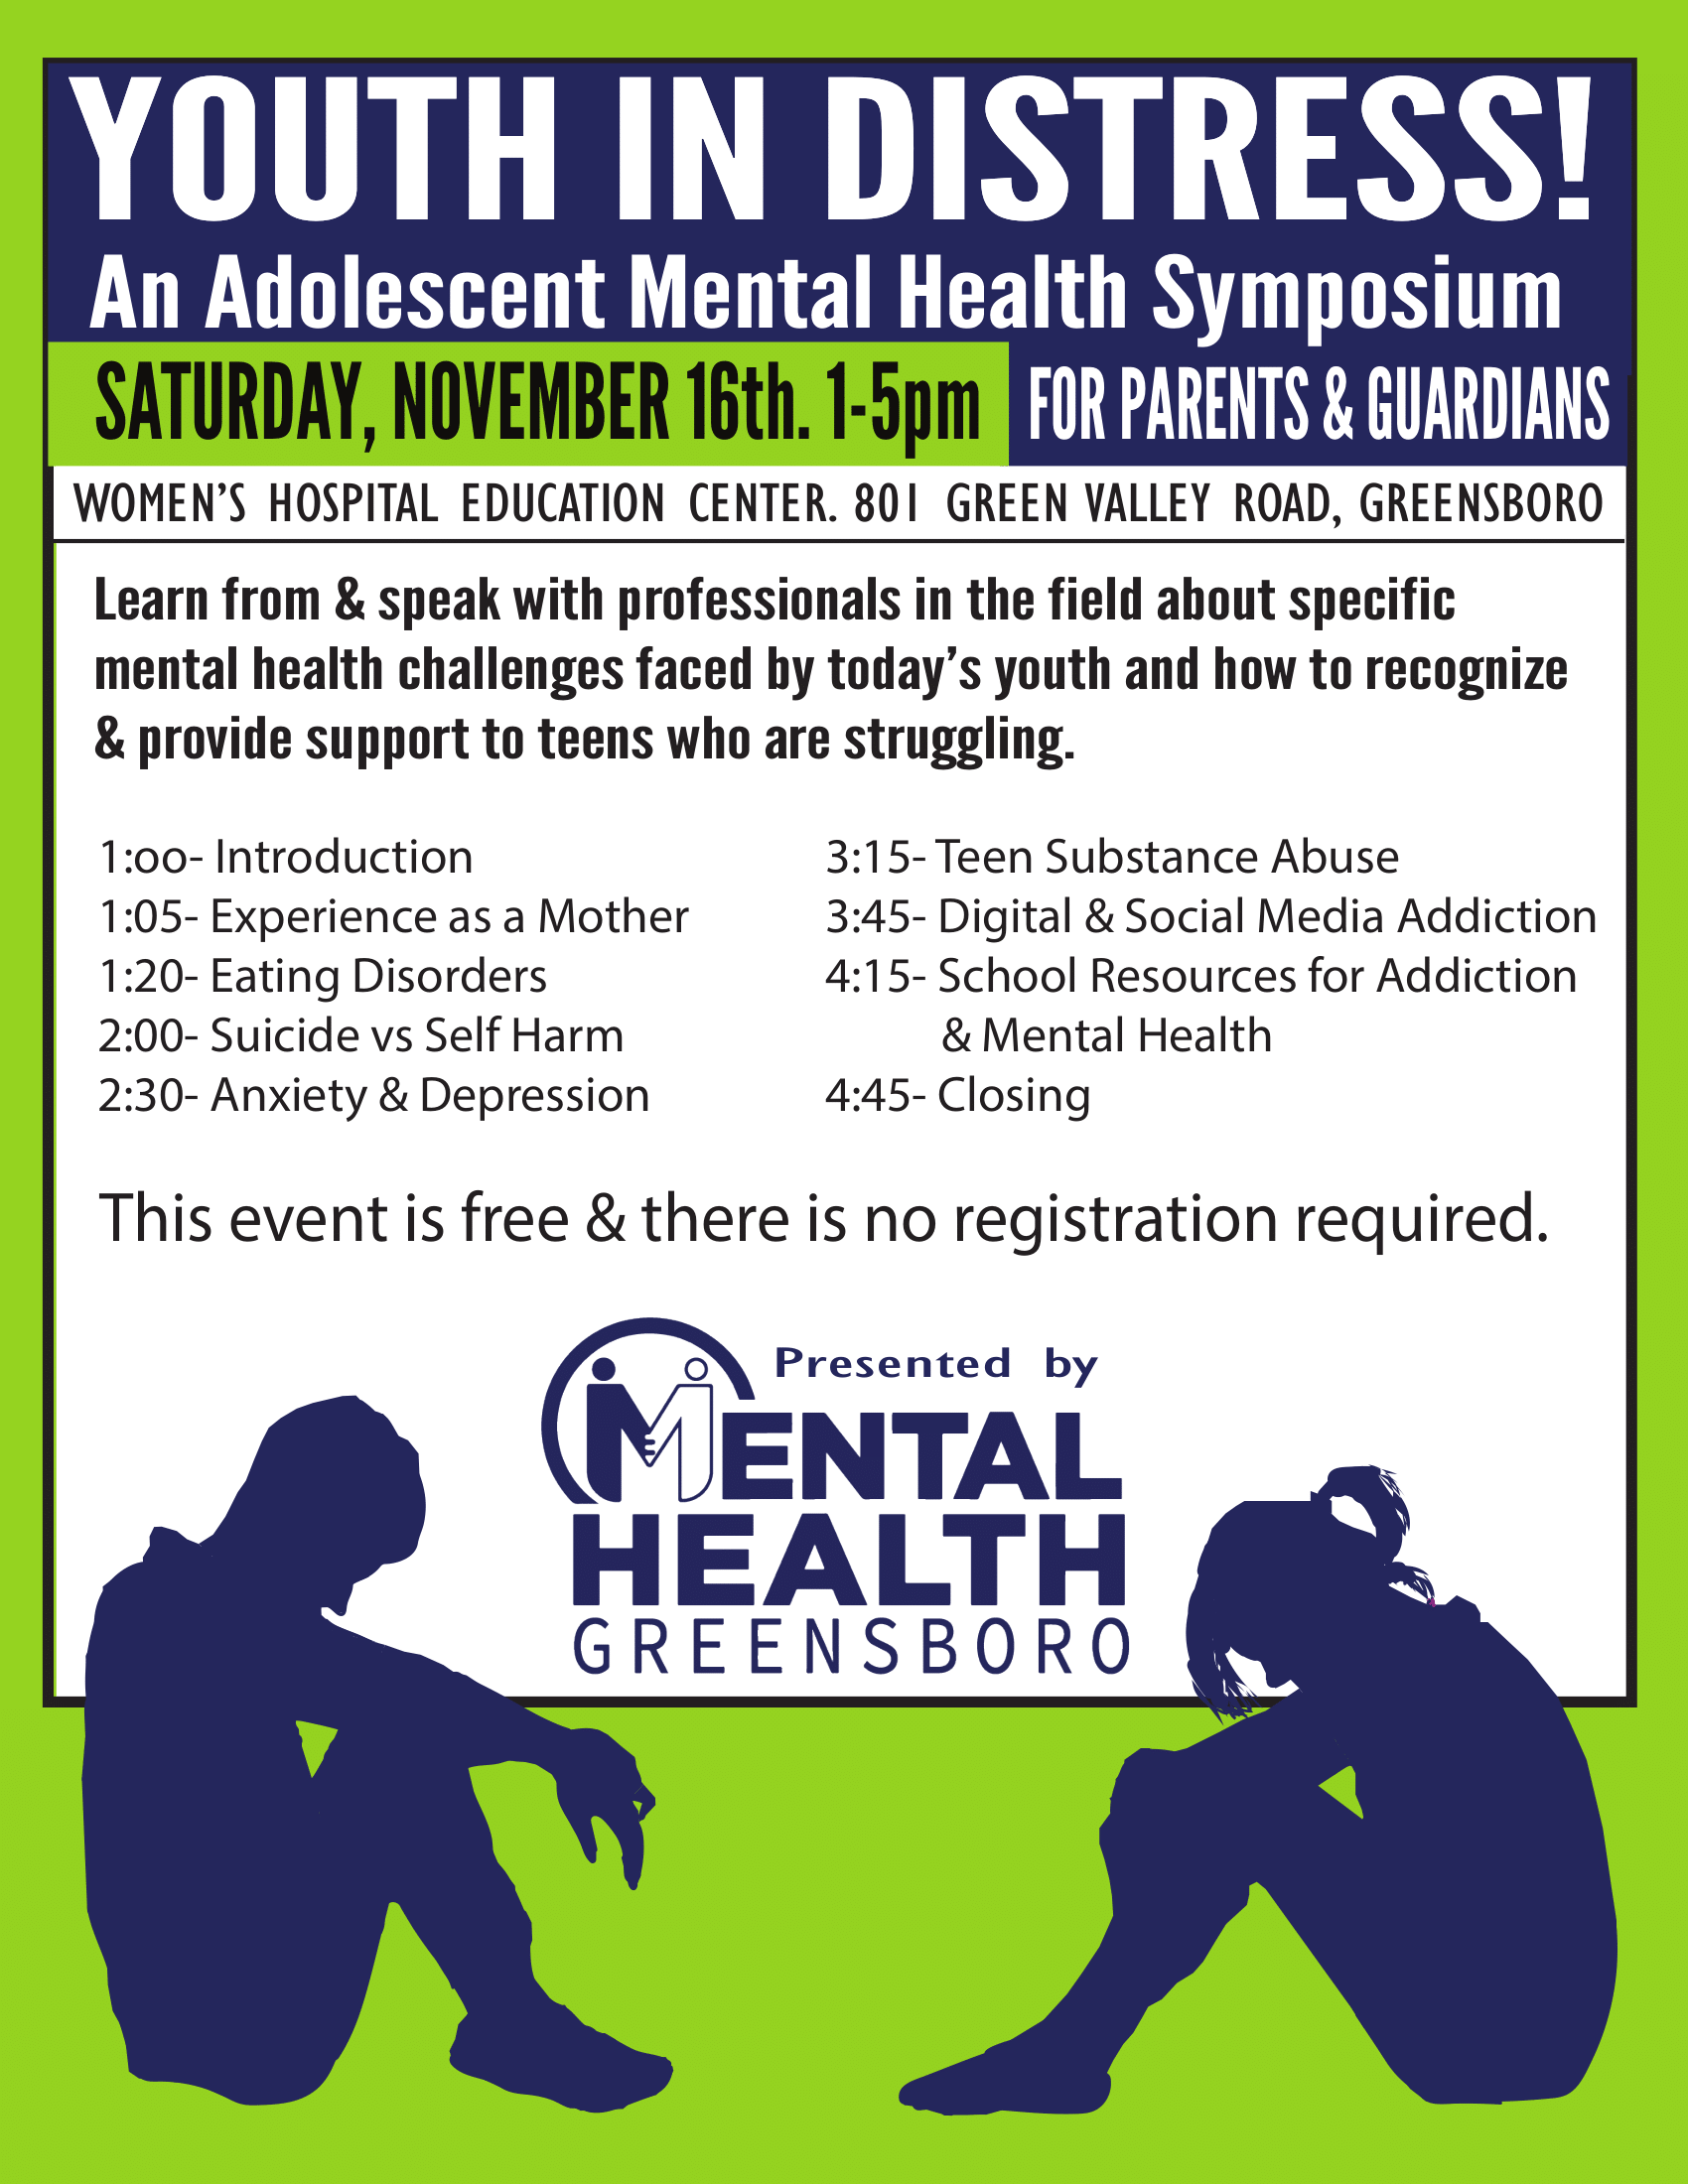 Youth in Distress: Adolescent Mental Health Symposium